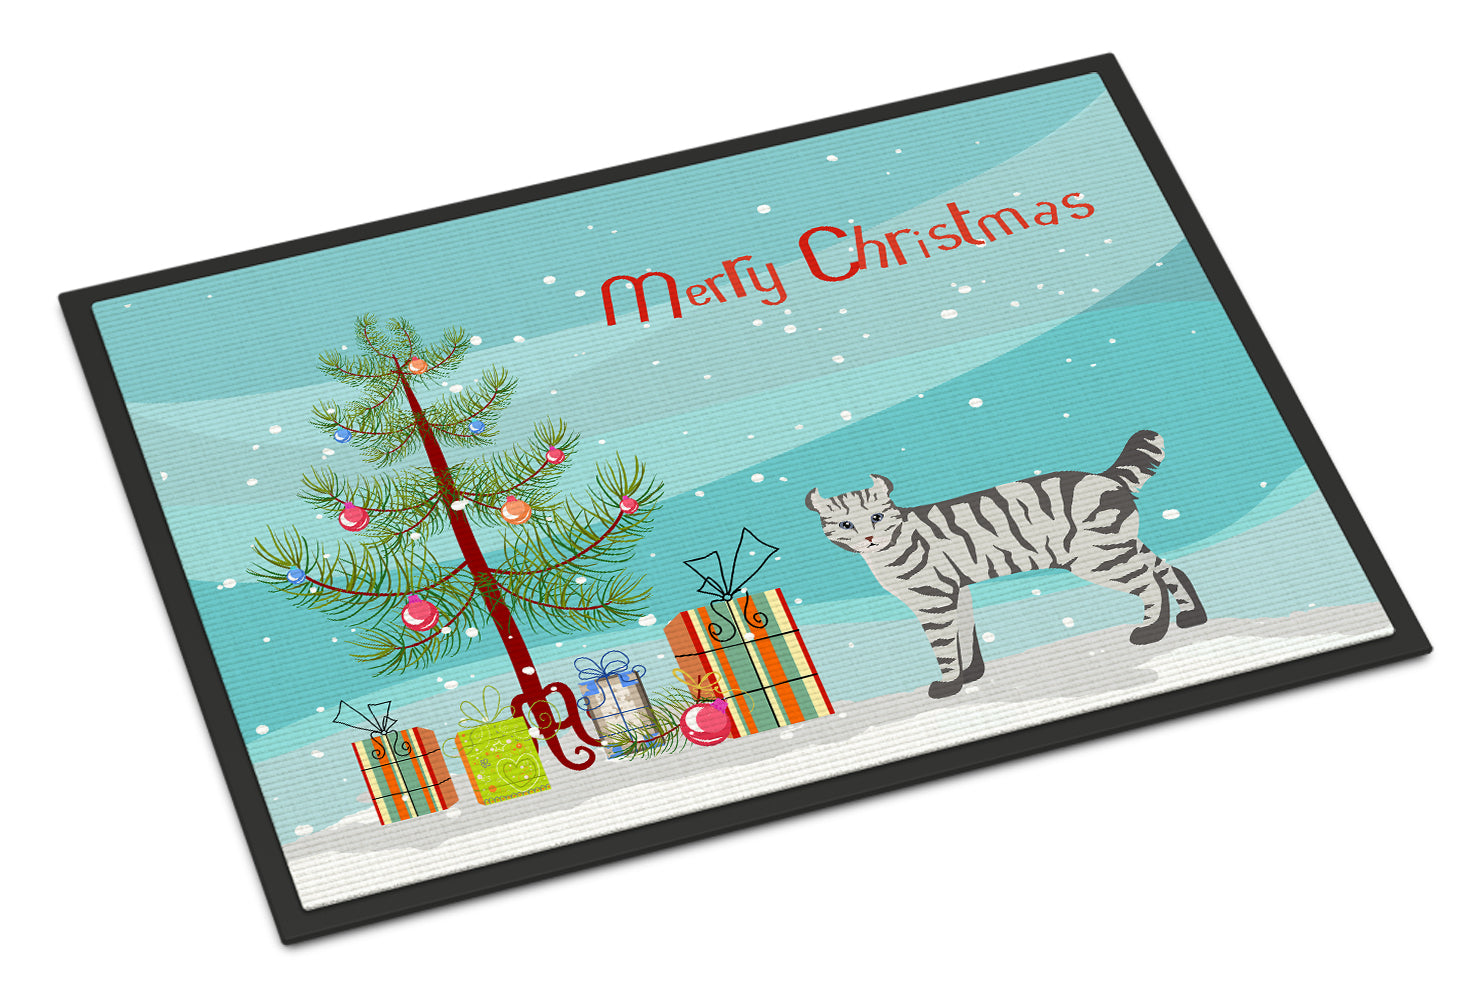 Highlander Lynx #2 Cat Merry Christmas Indoor or Outdoor Mat 18x27 CK4631MAT by Caroline's Treasures